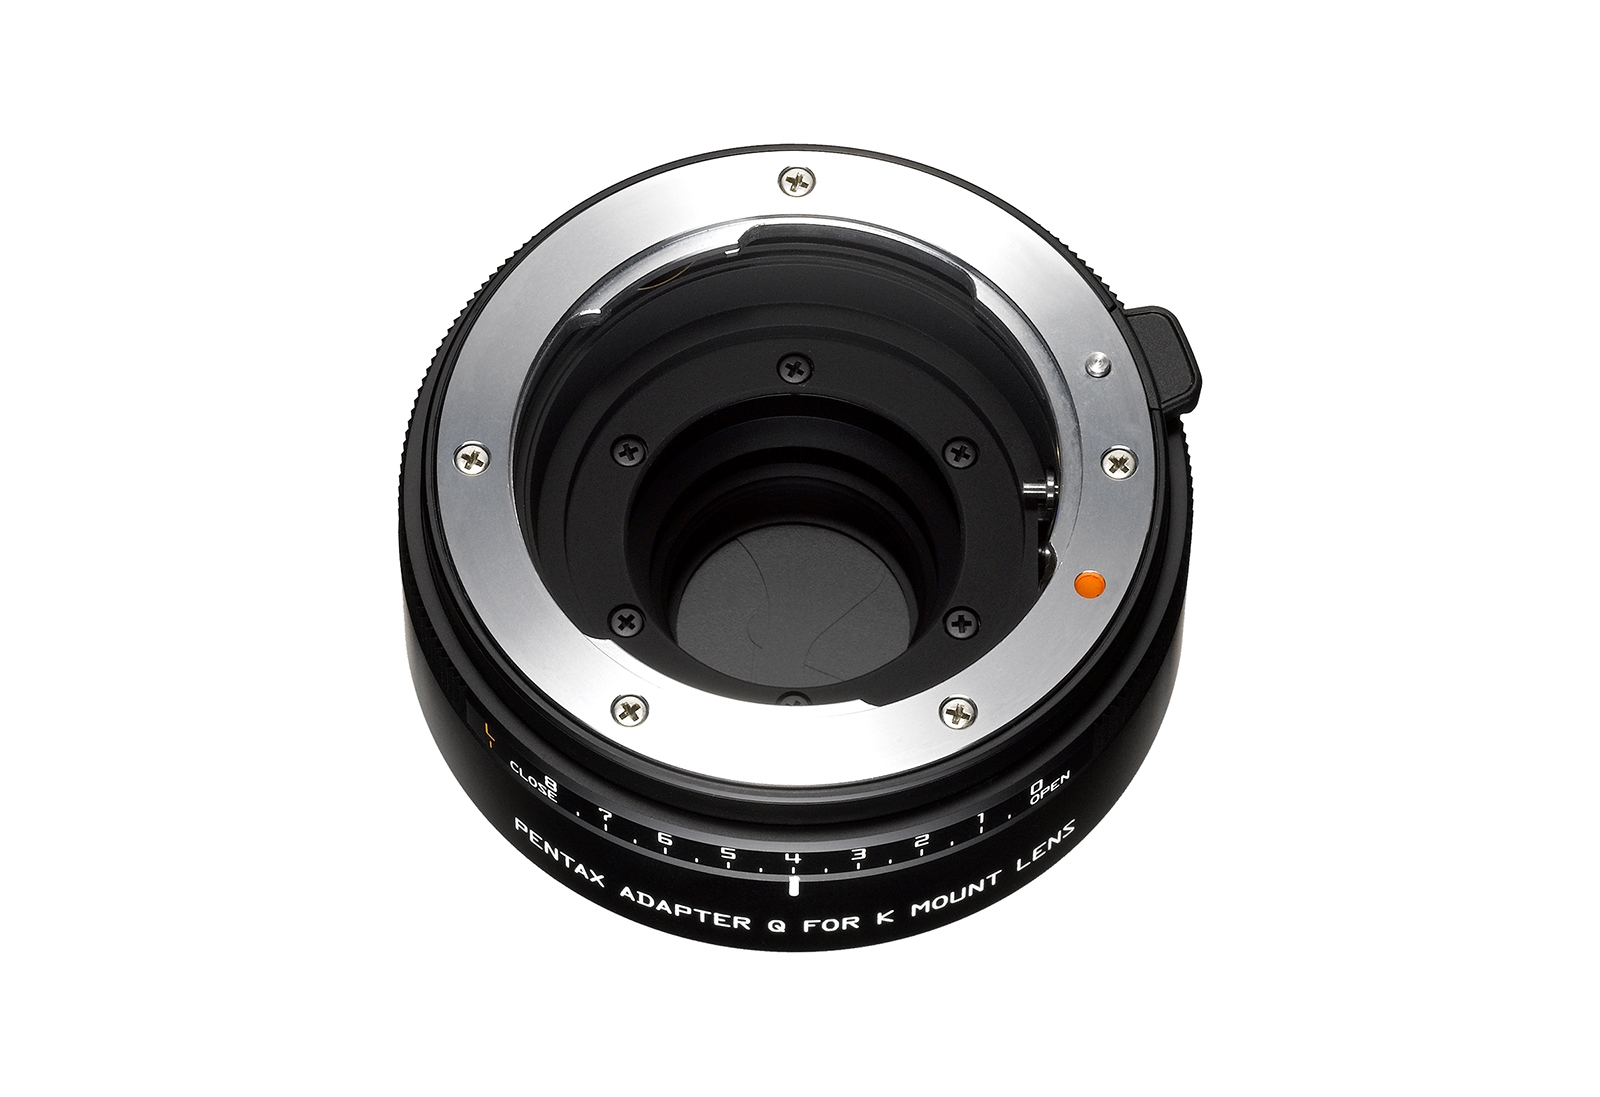 http://c758710.r10.cf2.rackcdn.com/img/press_images/Adapter Q for K-mount Lenses